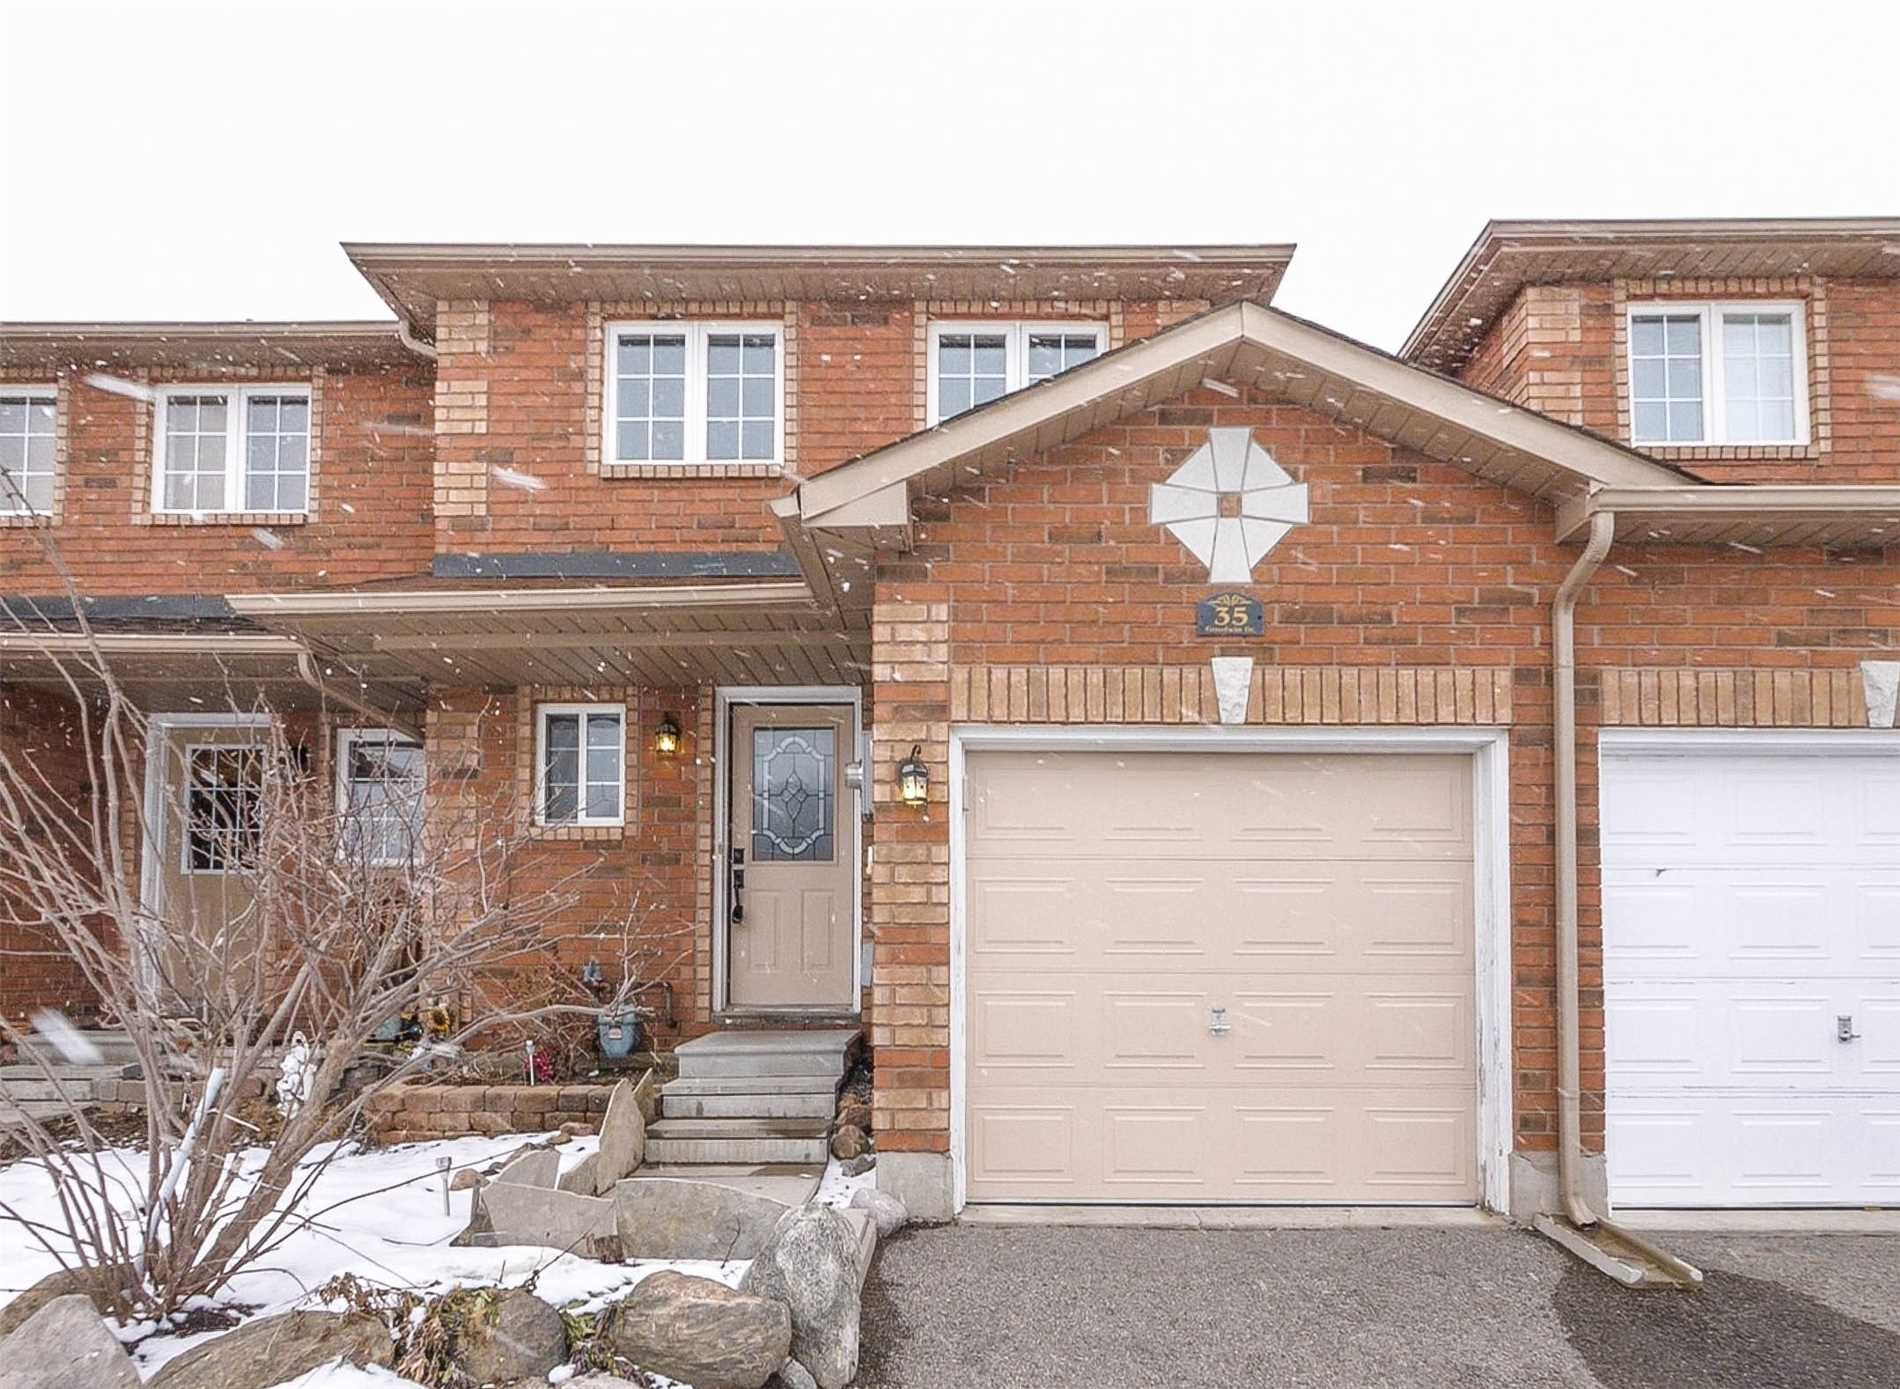 35 Goodwin Drive for sale